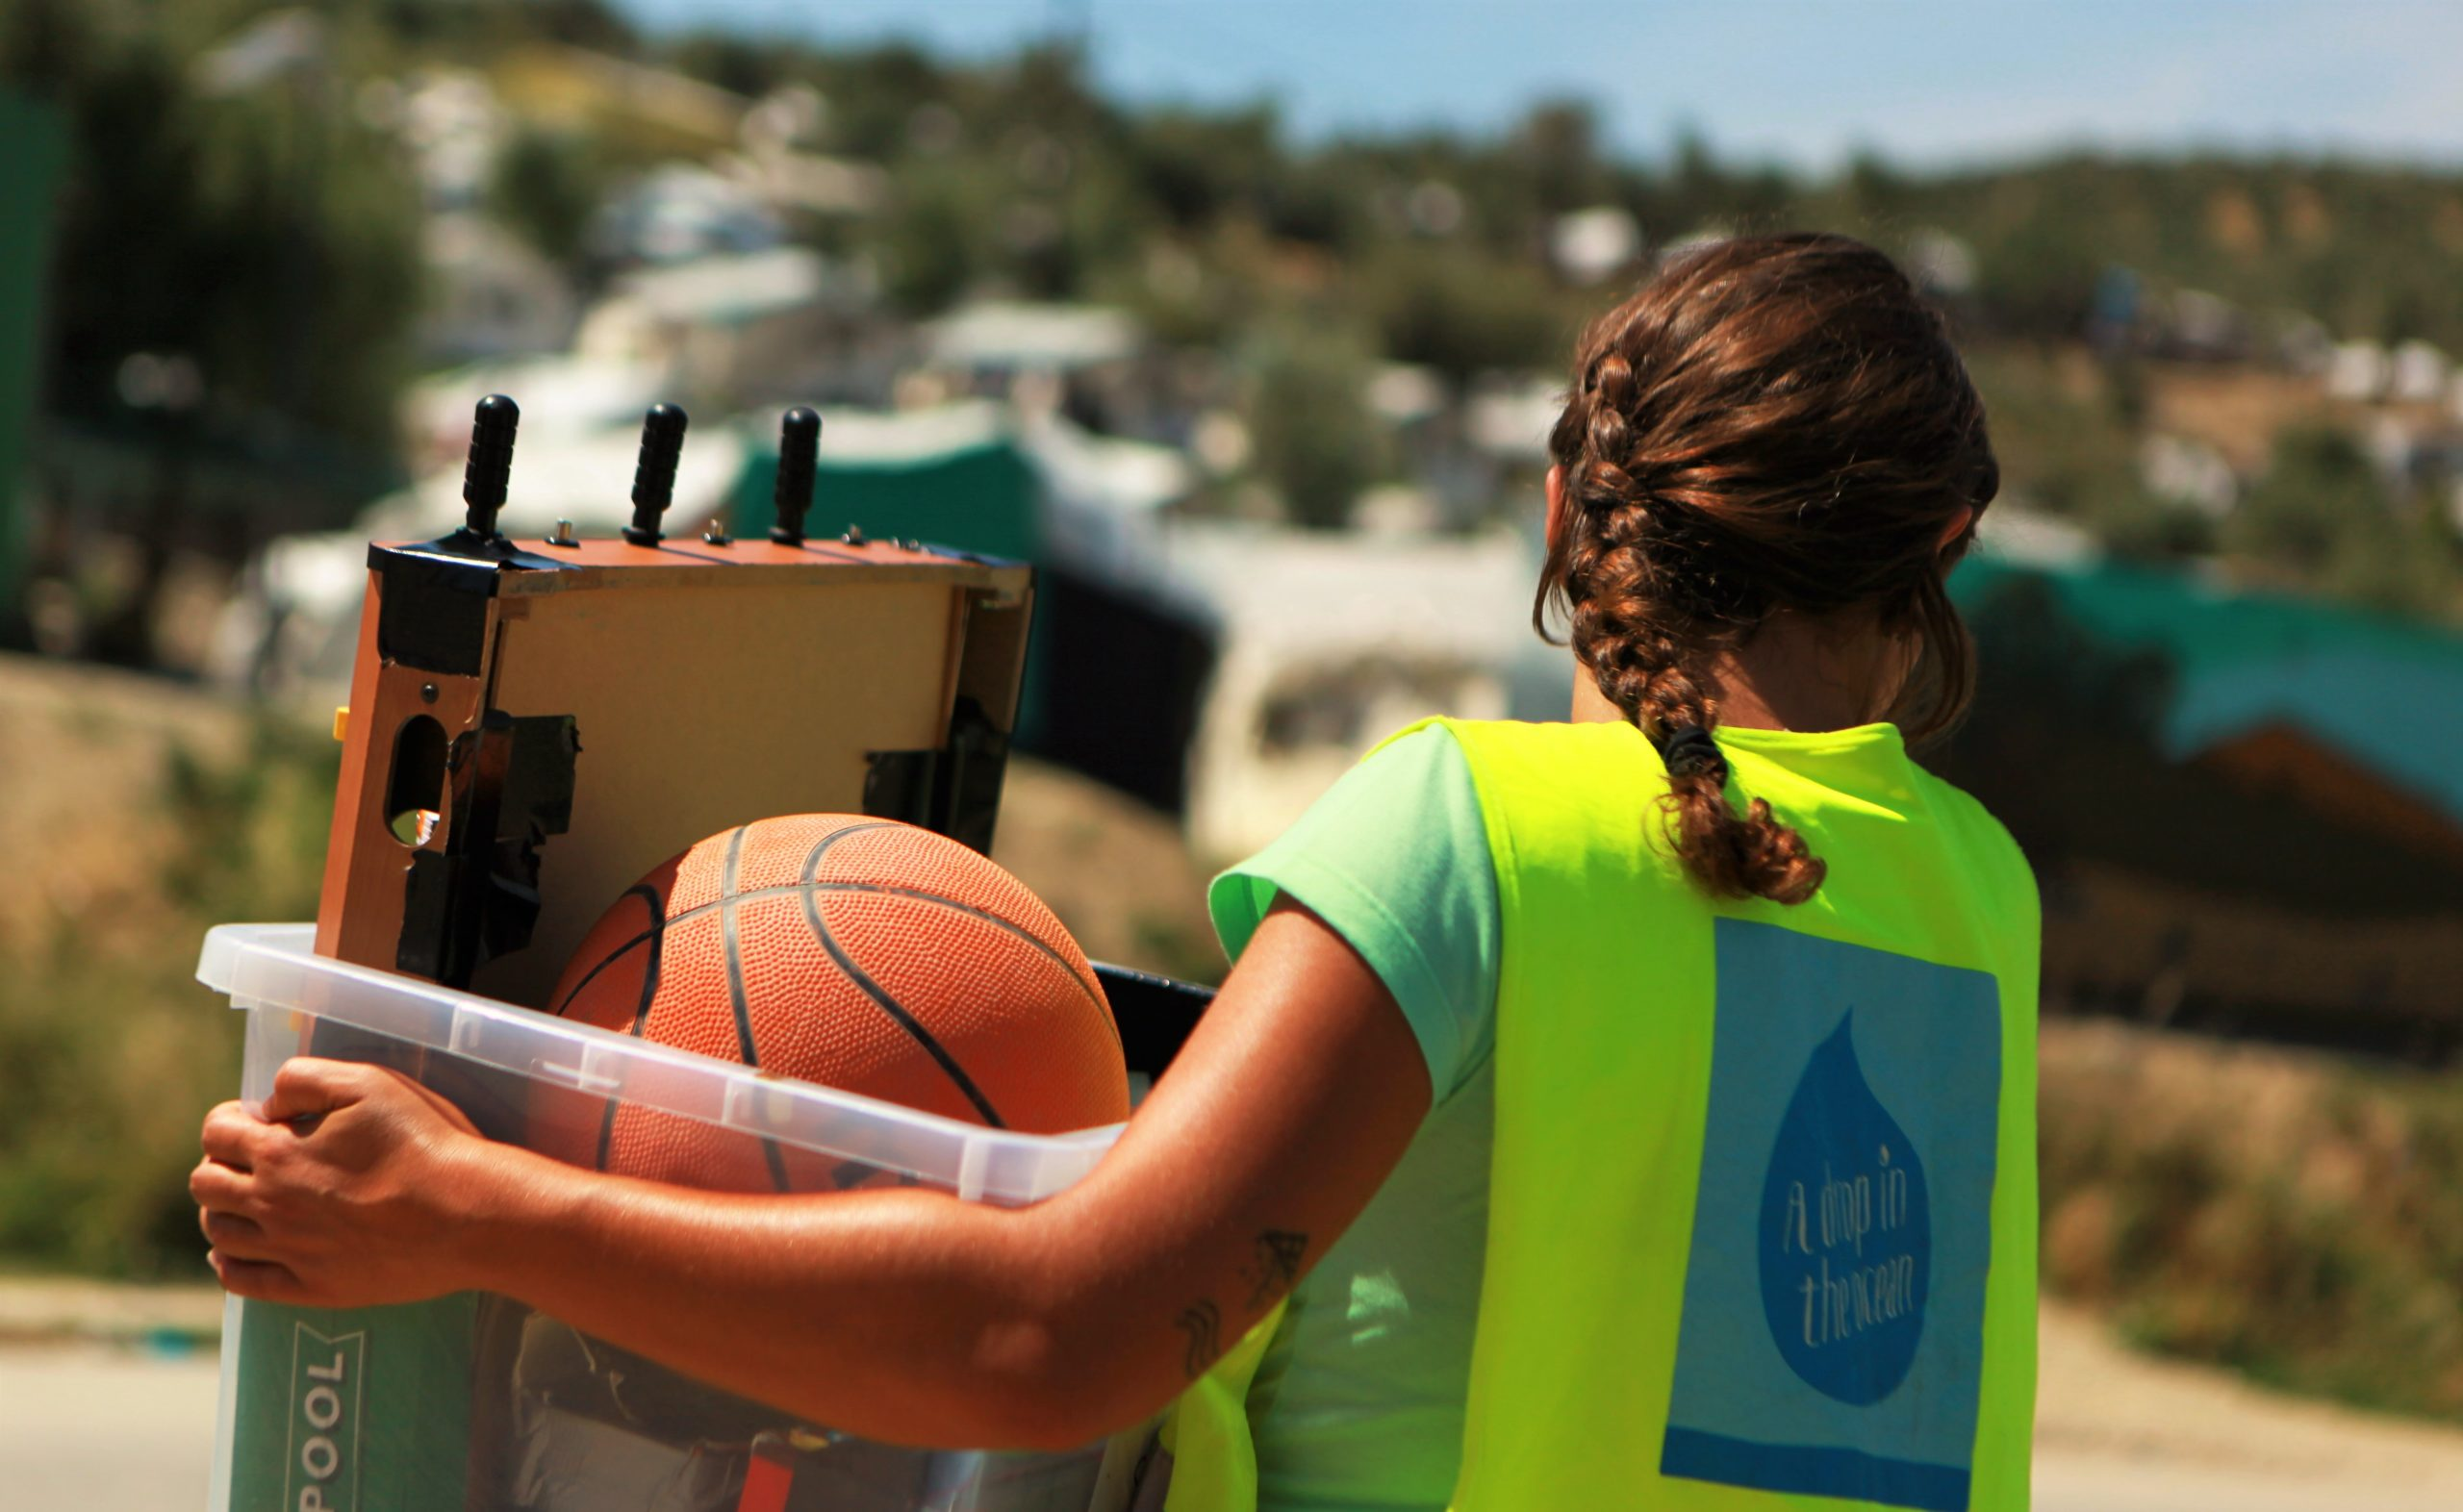 Drop volunteer bringing games for unaccompanied minors in Moria refugee camp